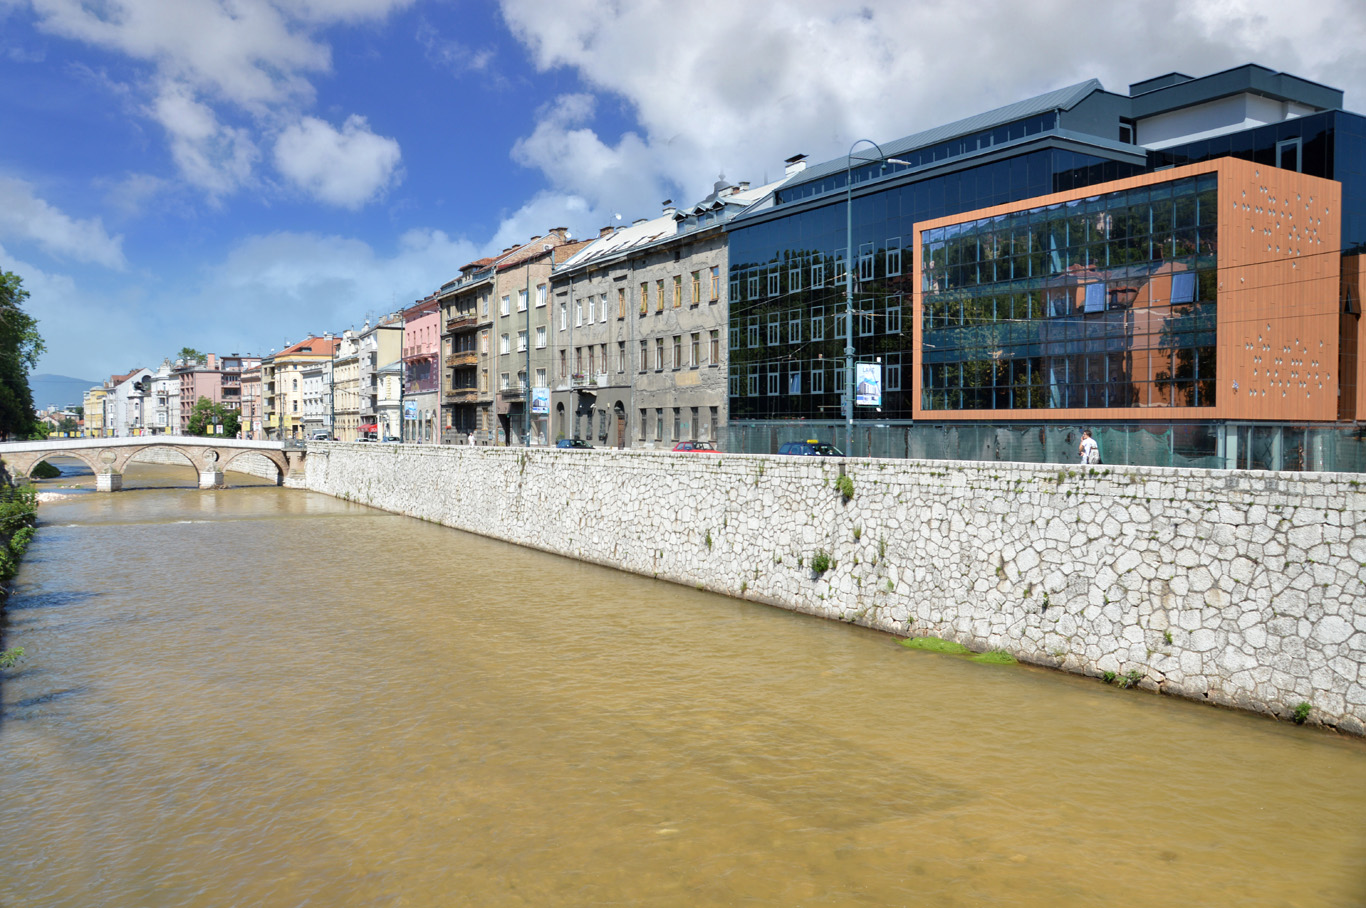 Buildings along the Miljacka River